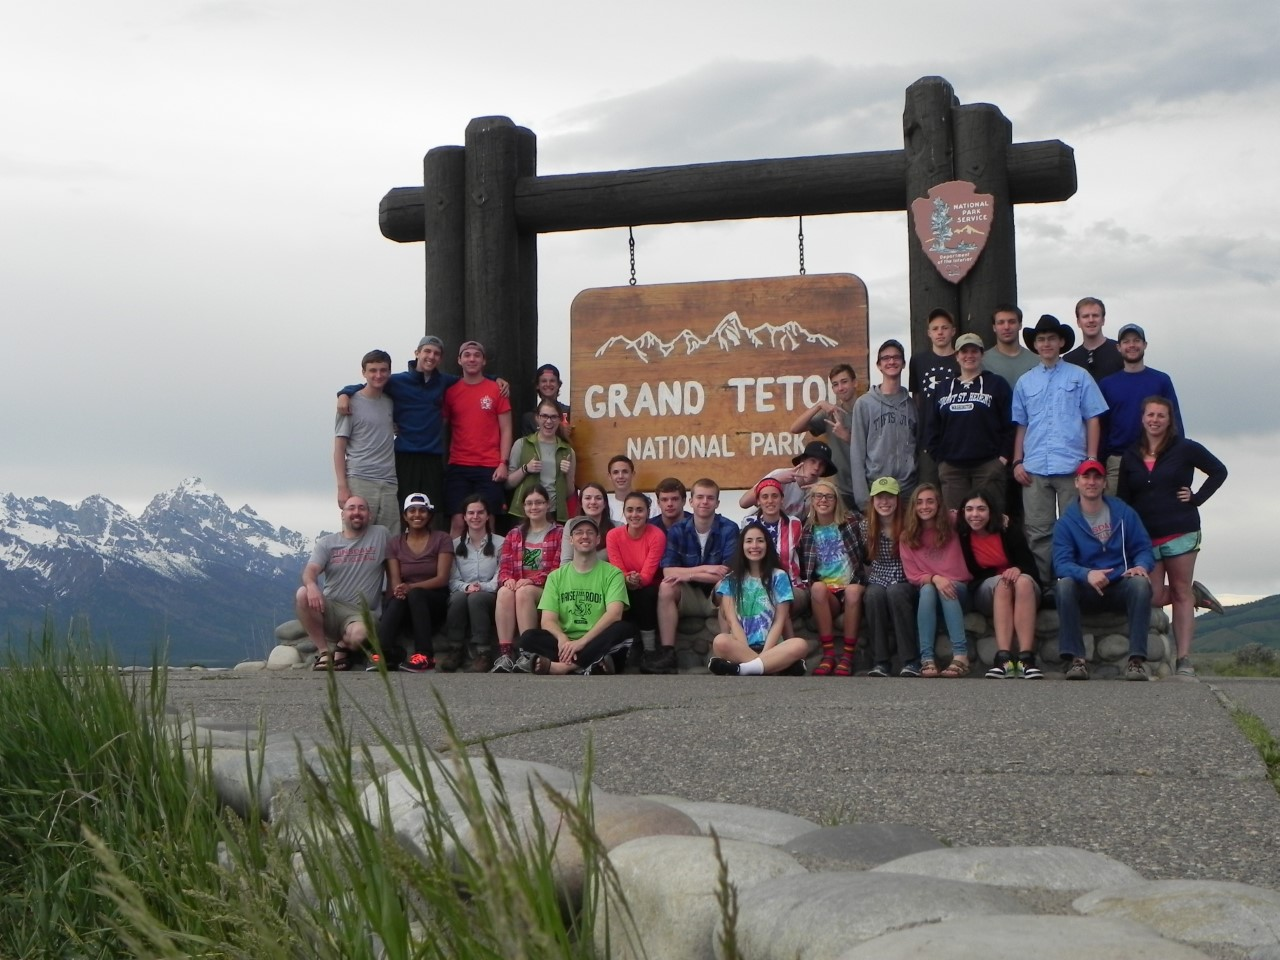 In 2016, teachers and students traveled to Grand Teton National Park in Wyoming for a camping and hiking adventure.